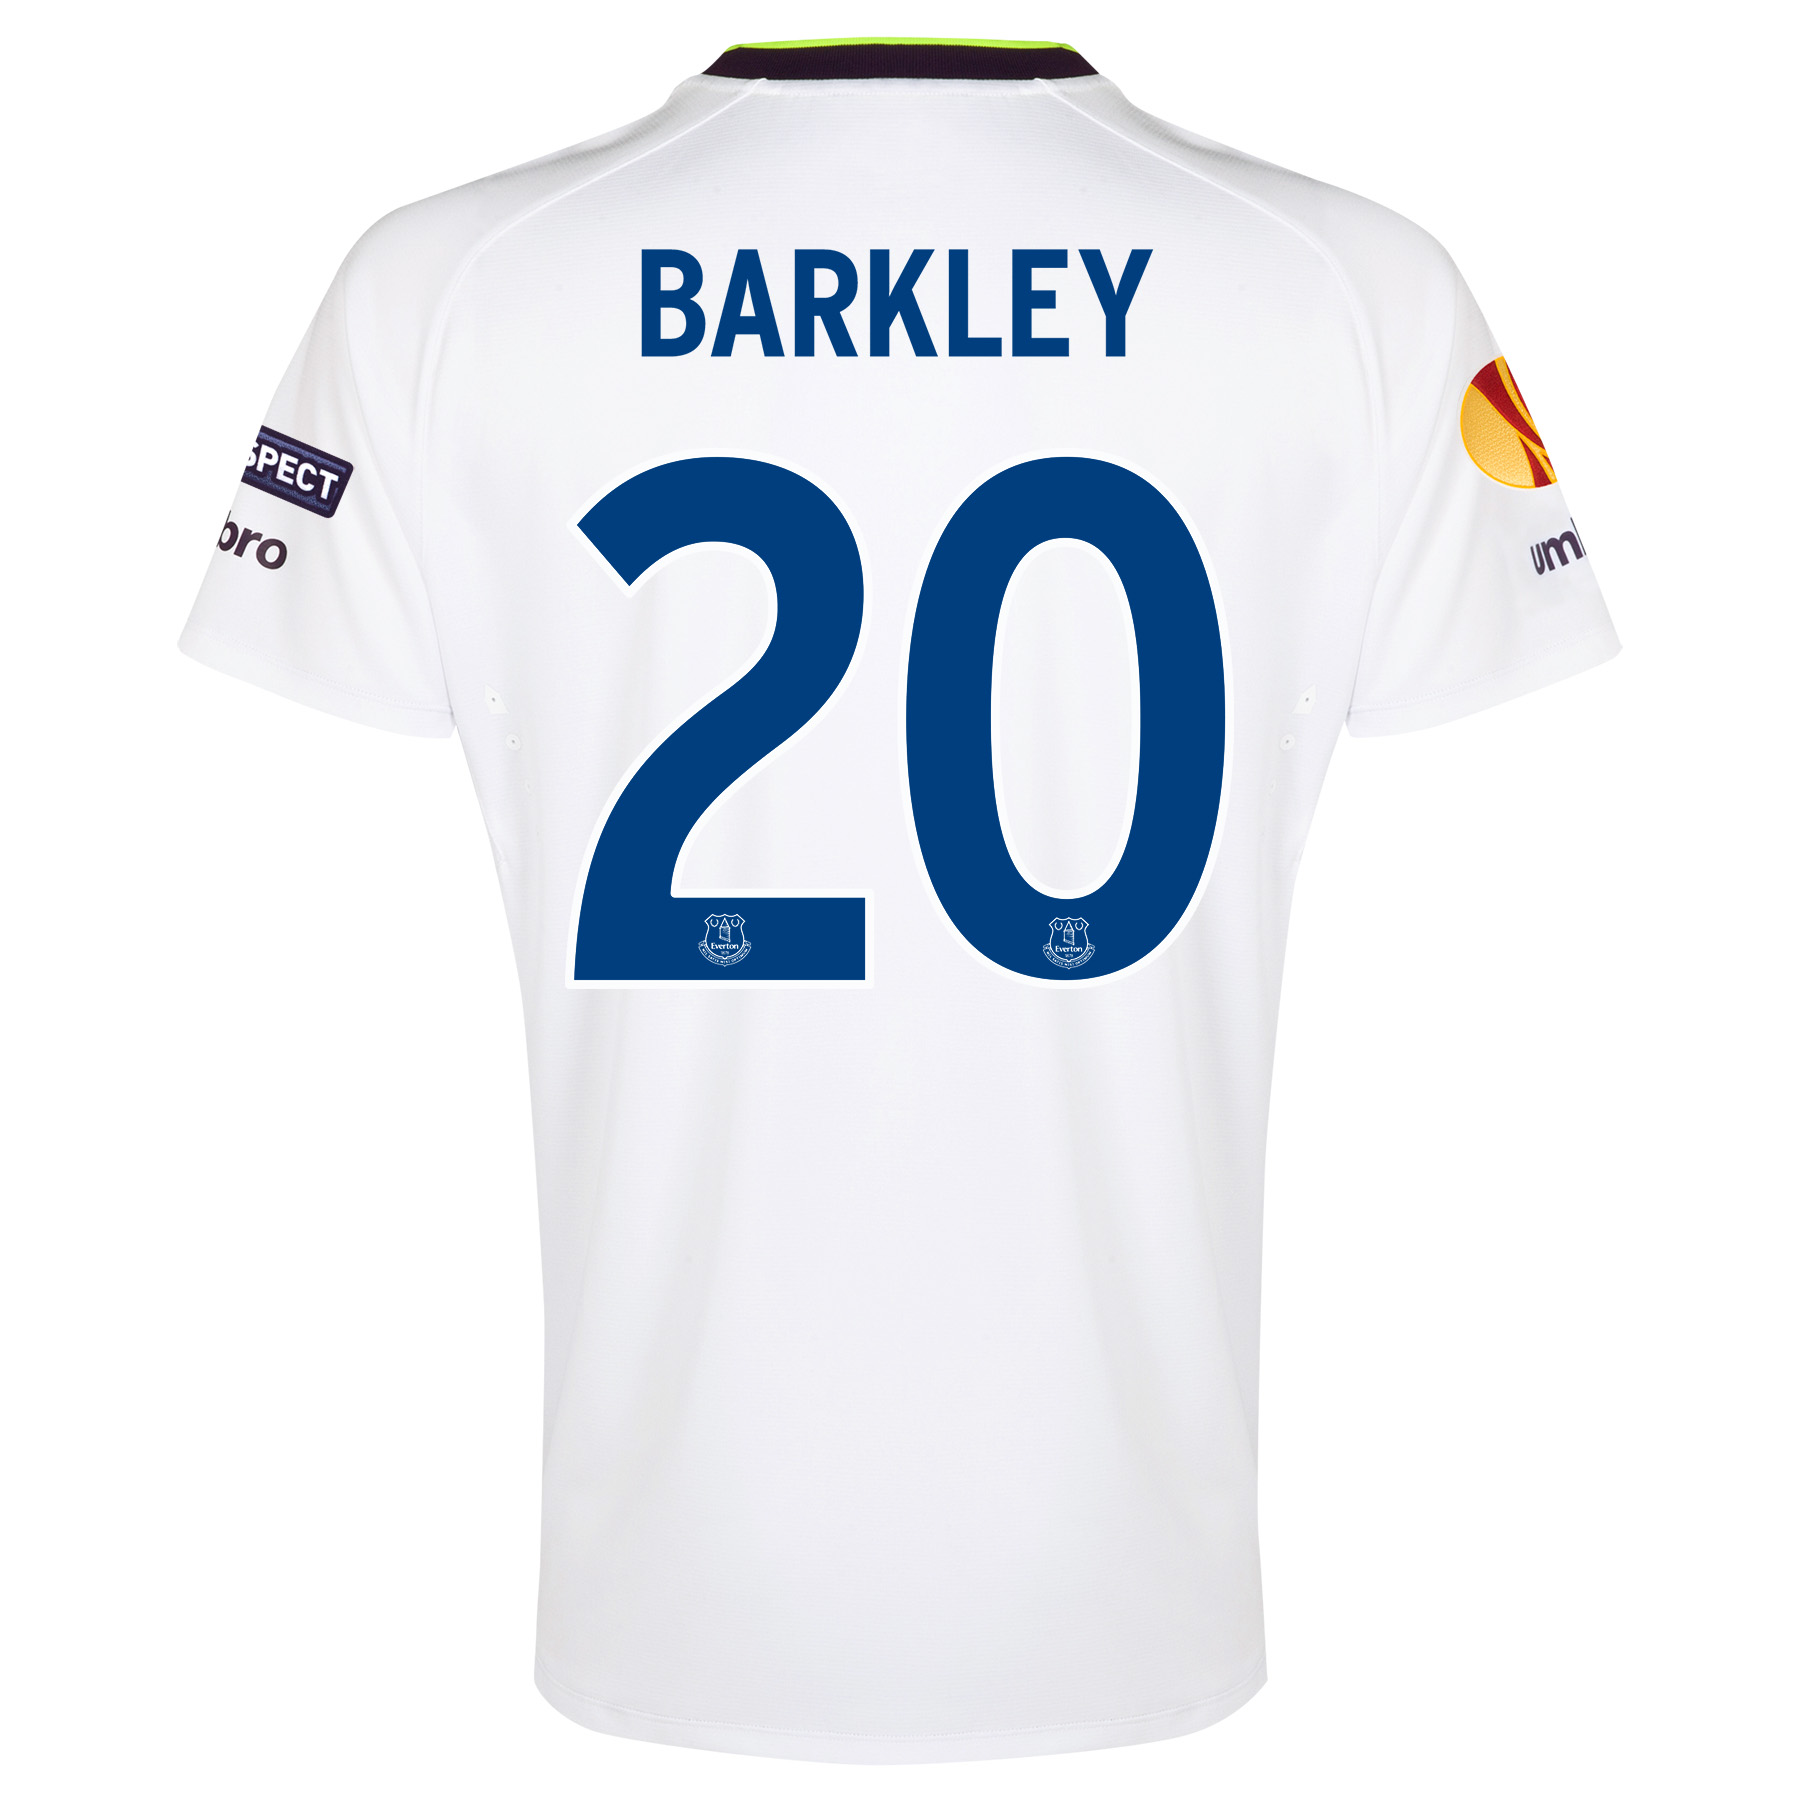 Everton UEFA Europa League 3rd Shirt 2014/15 with Barkley 20 printing